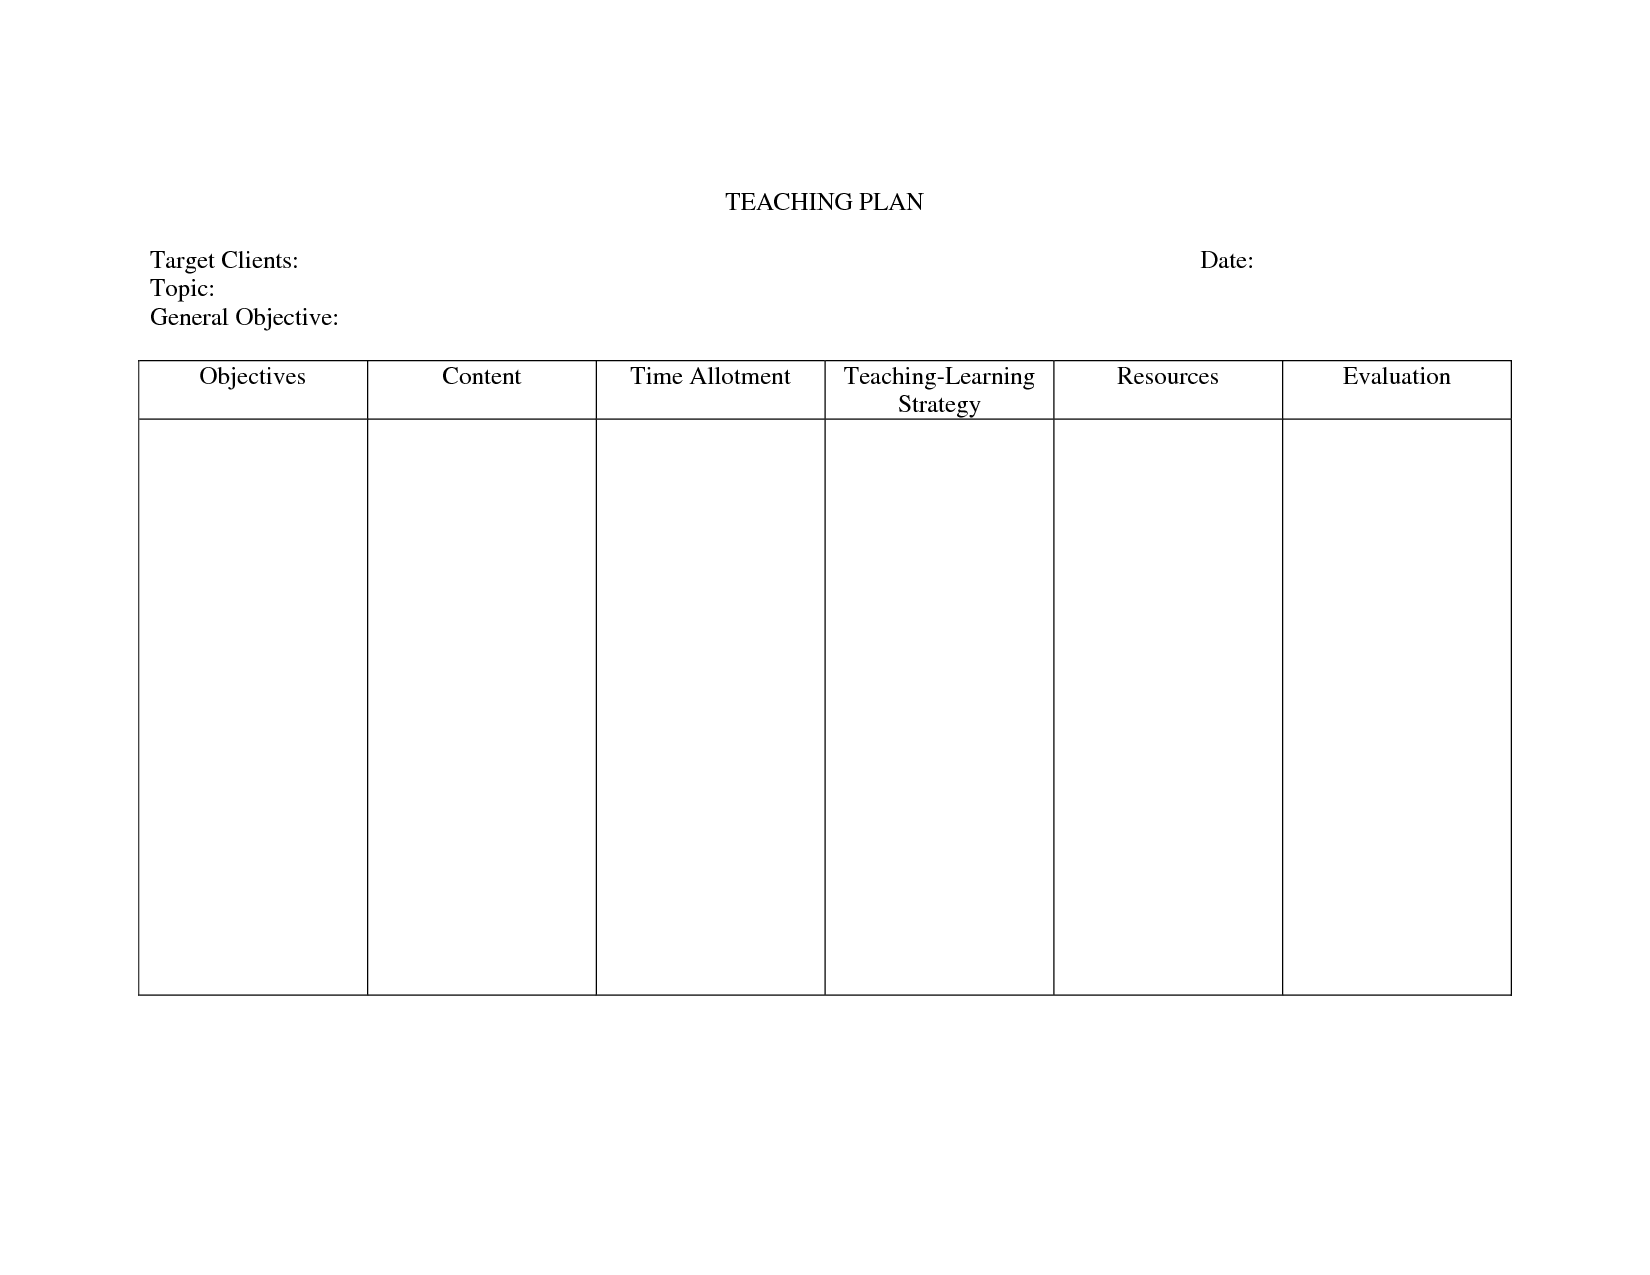 24 Images of Nursing Teaching Plan Template | leseriail.com